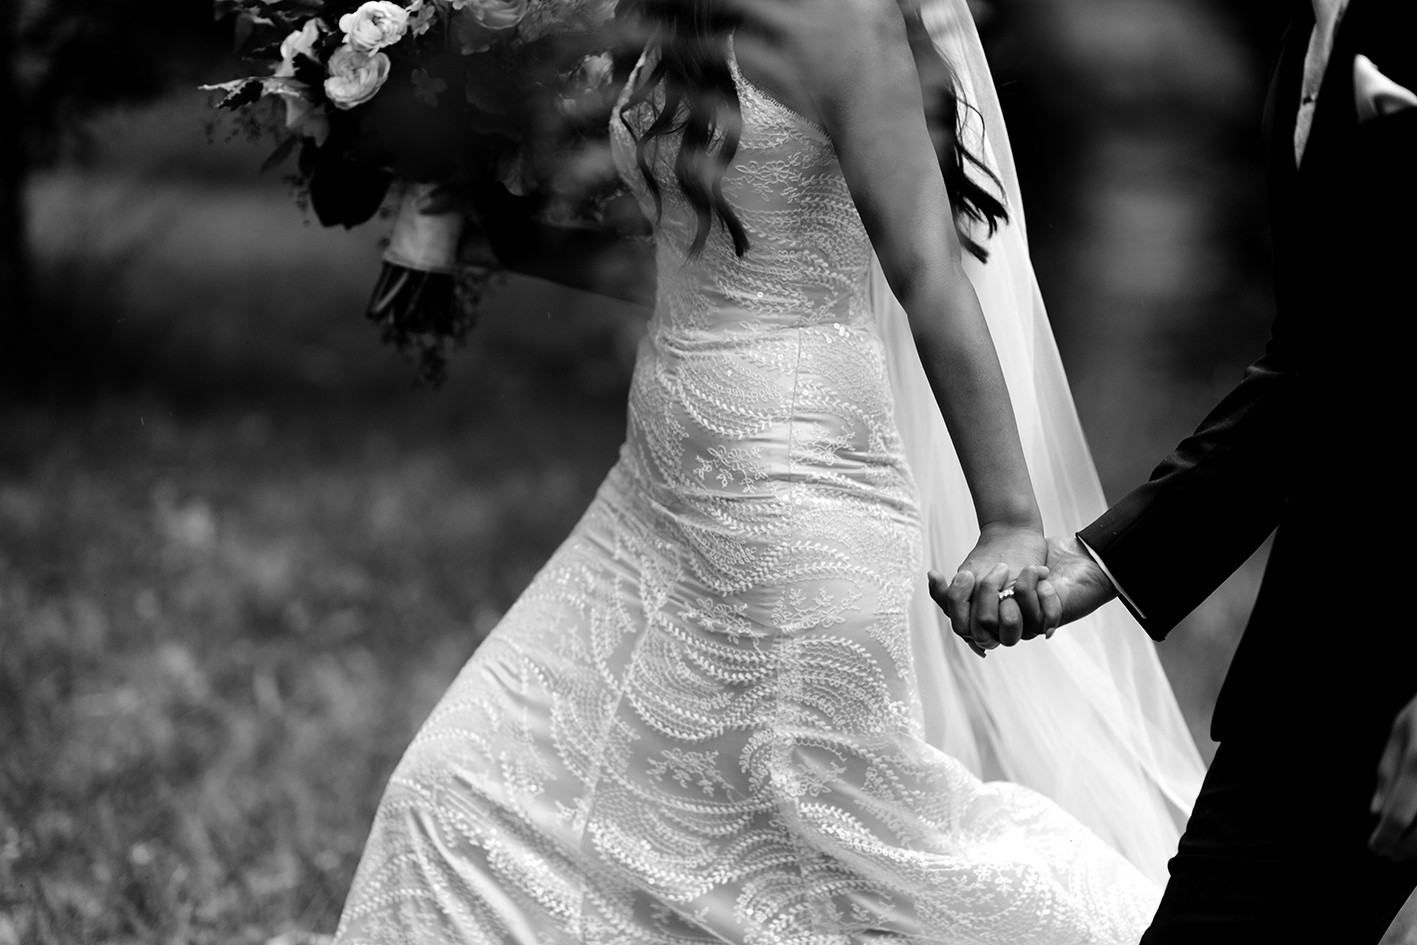 How important are wedding photos?